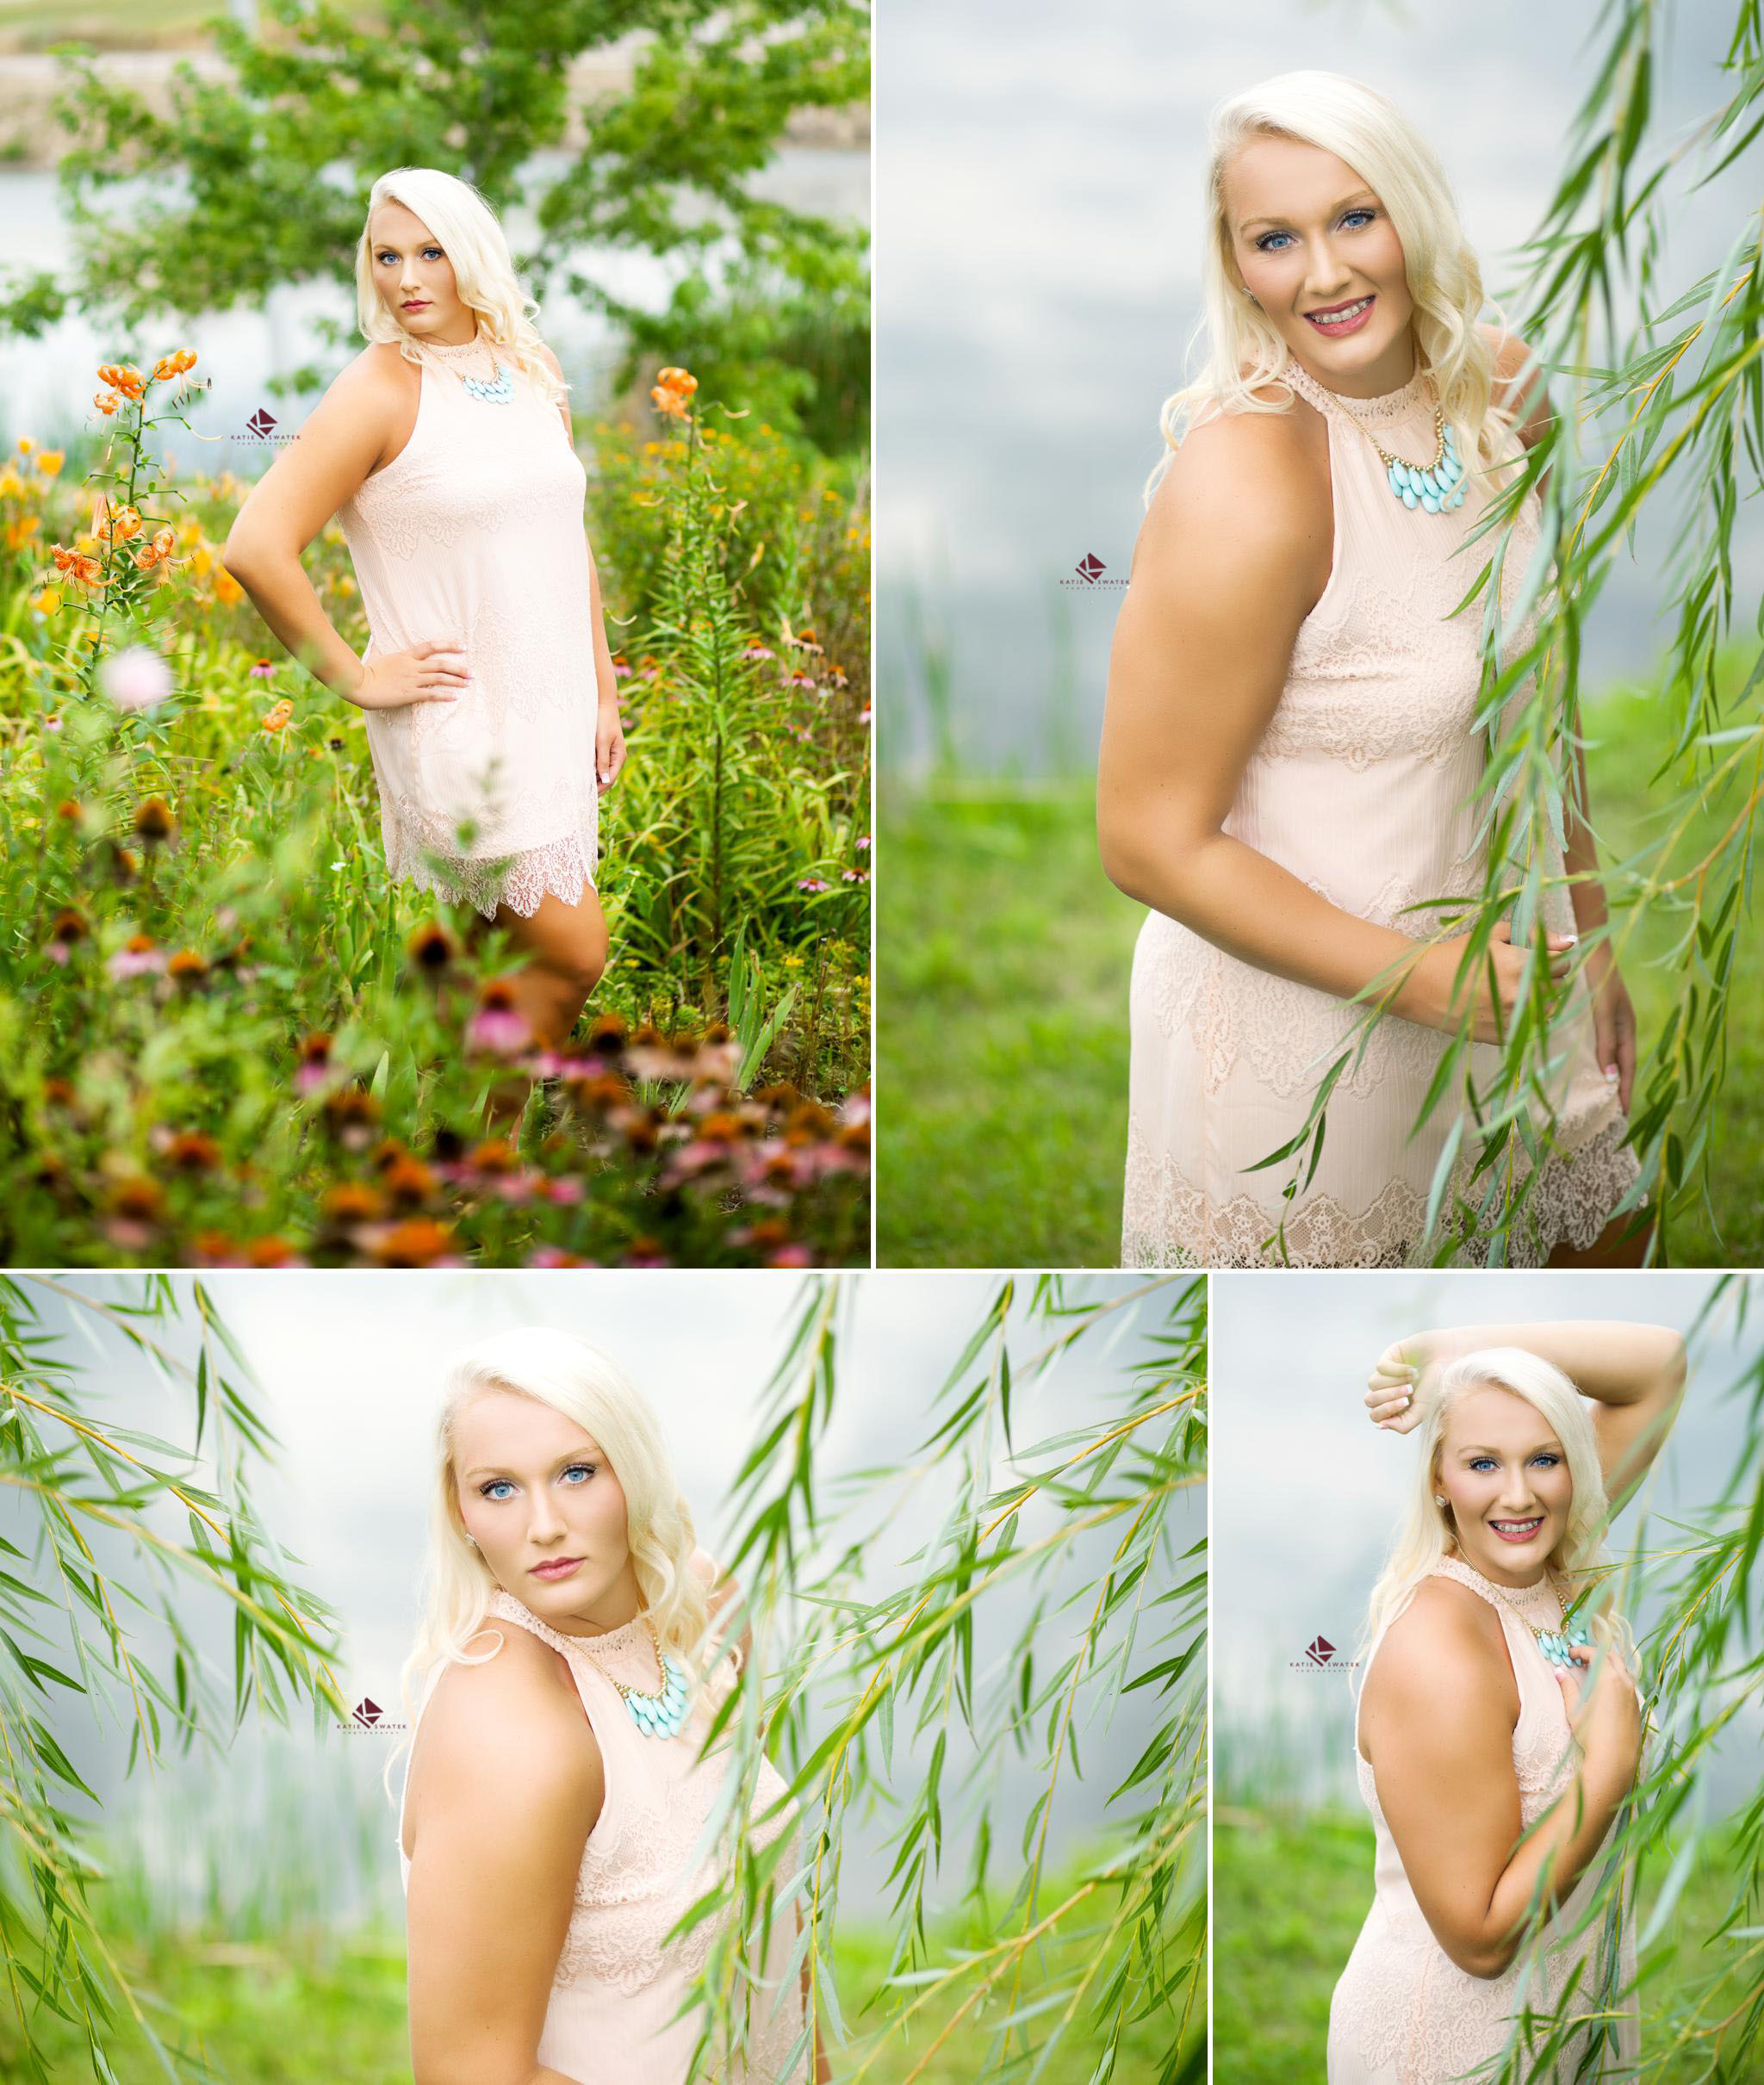 blonde senior girl in a blush colored dress standing by a willow tree swaying in the wind